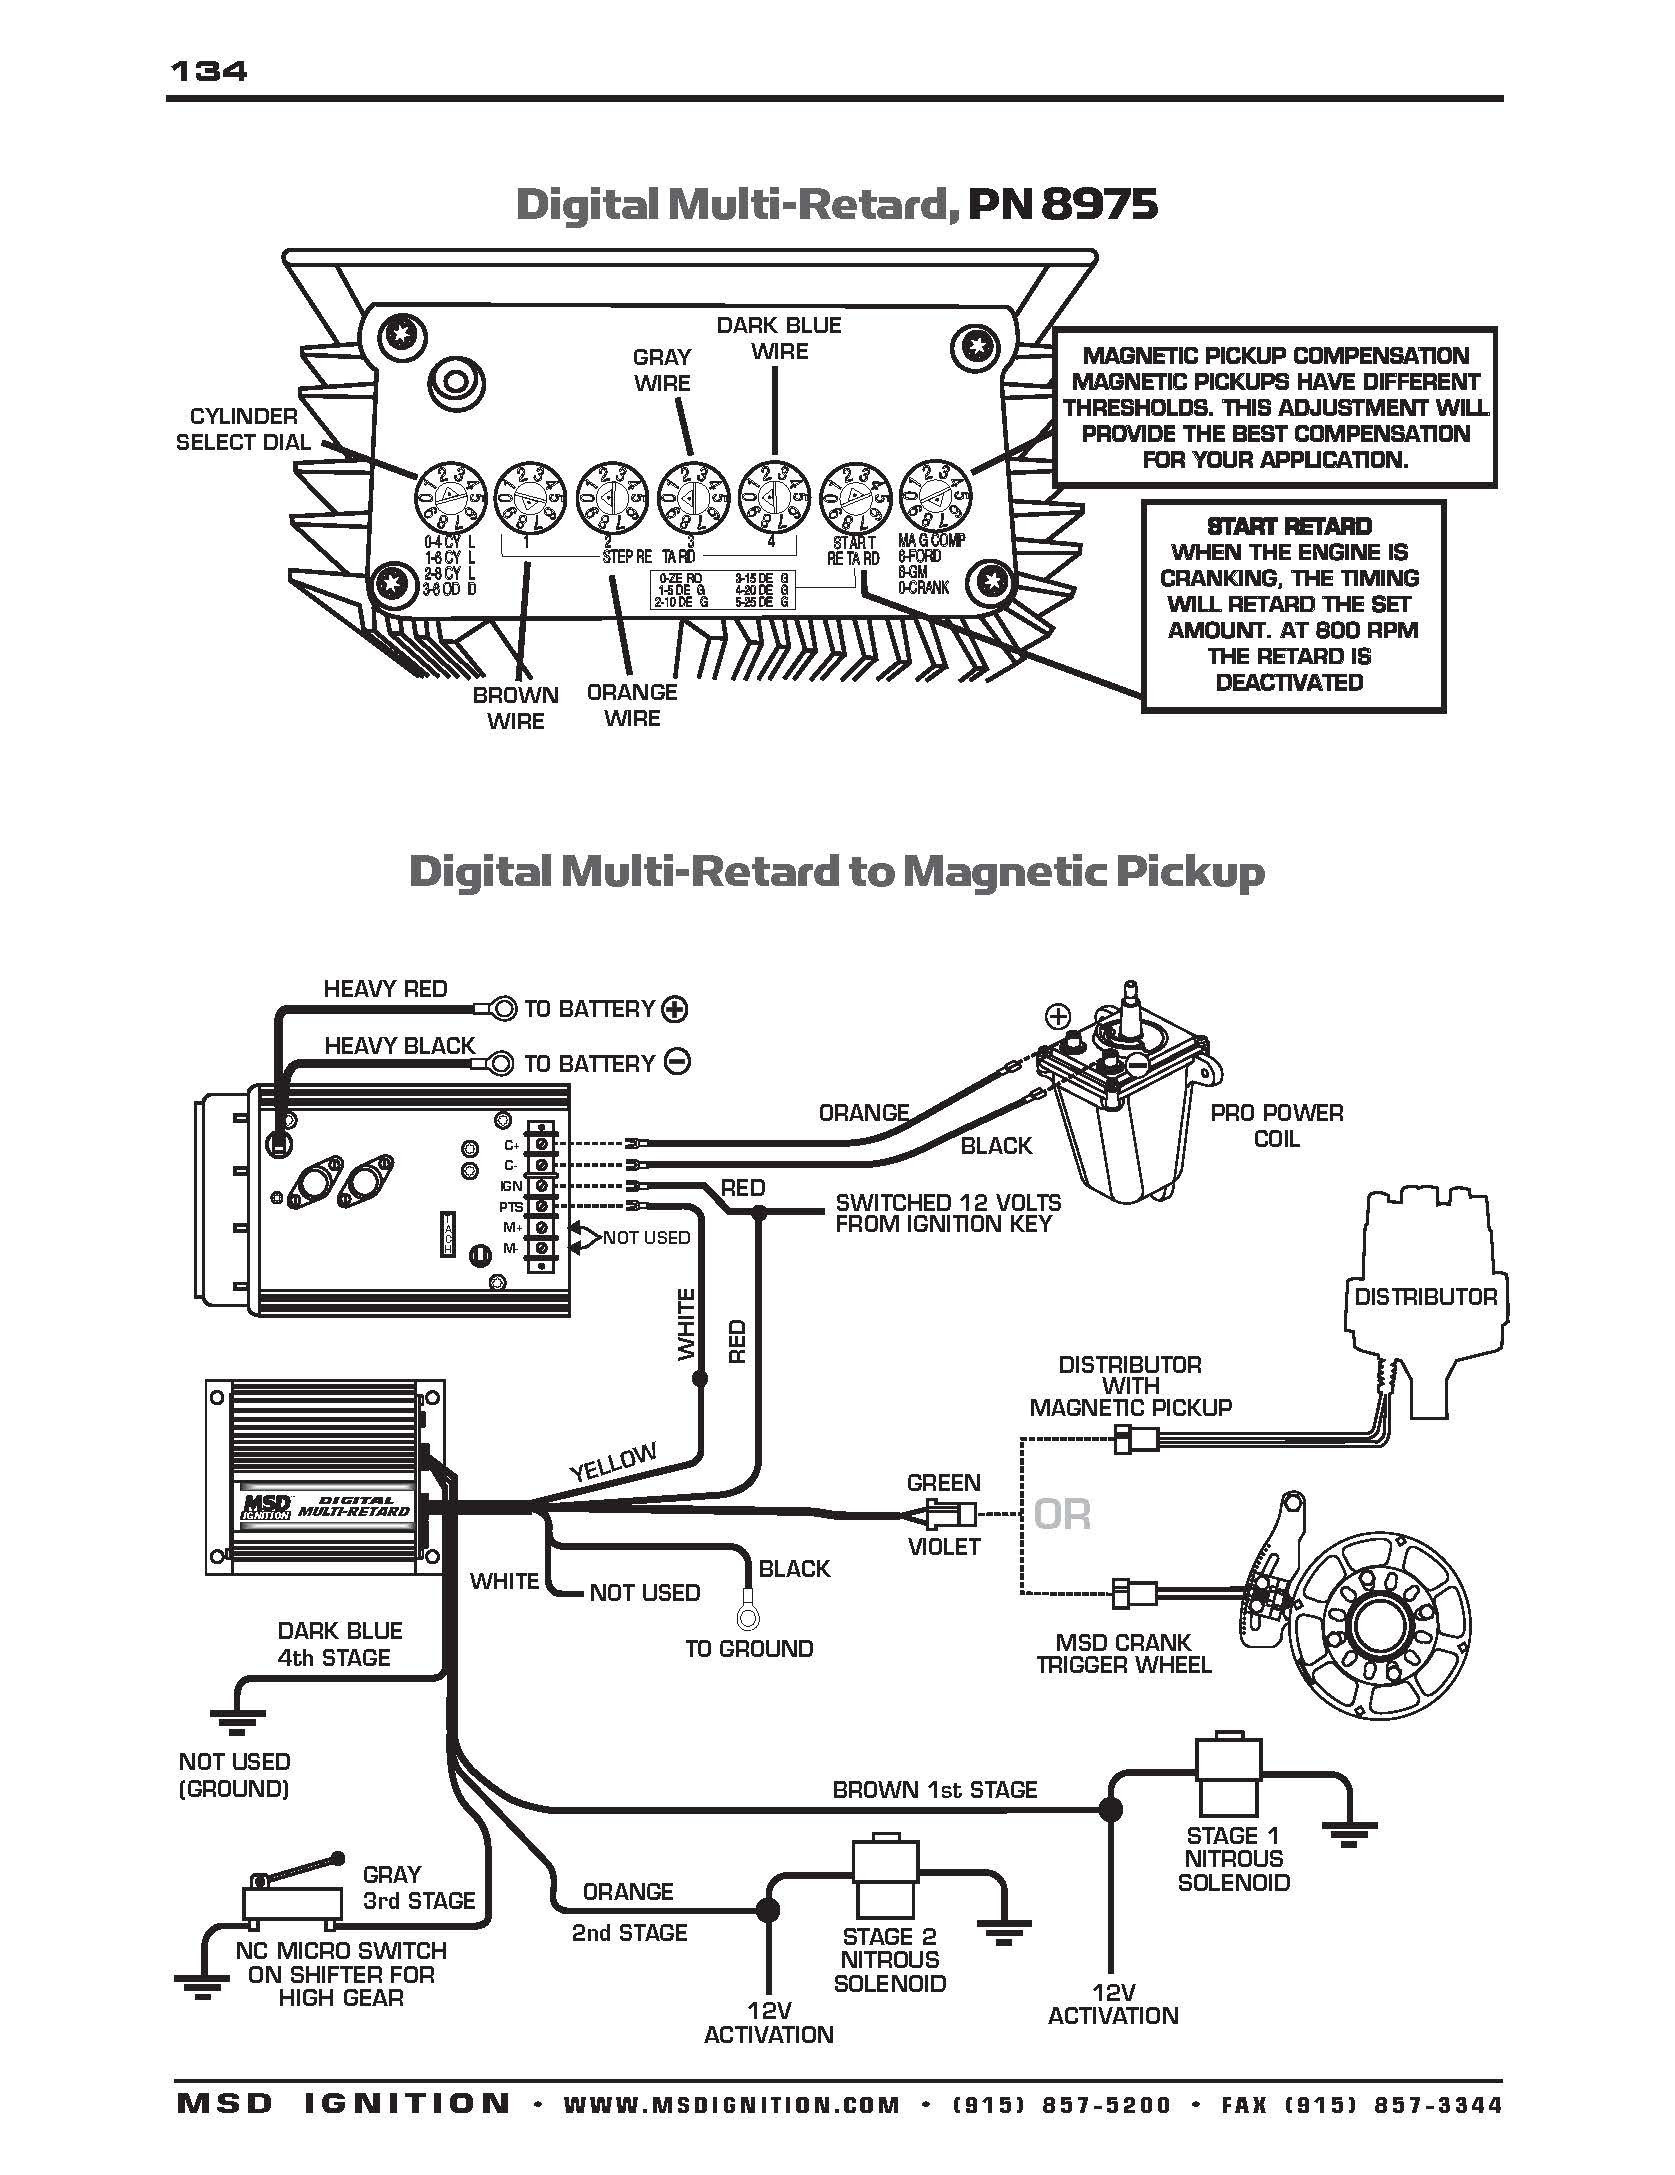 Read [DIAGRAM] Accel Dfi Wiring Diagram FULL Version HD Quality Wiring  Diagram - DIAGRAMJEWELRY.ITISRIGHI.ITitisrighi.it